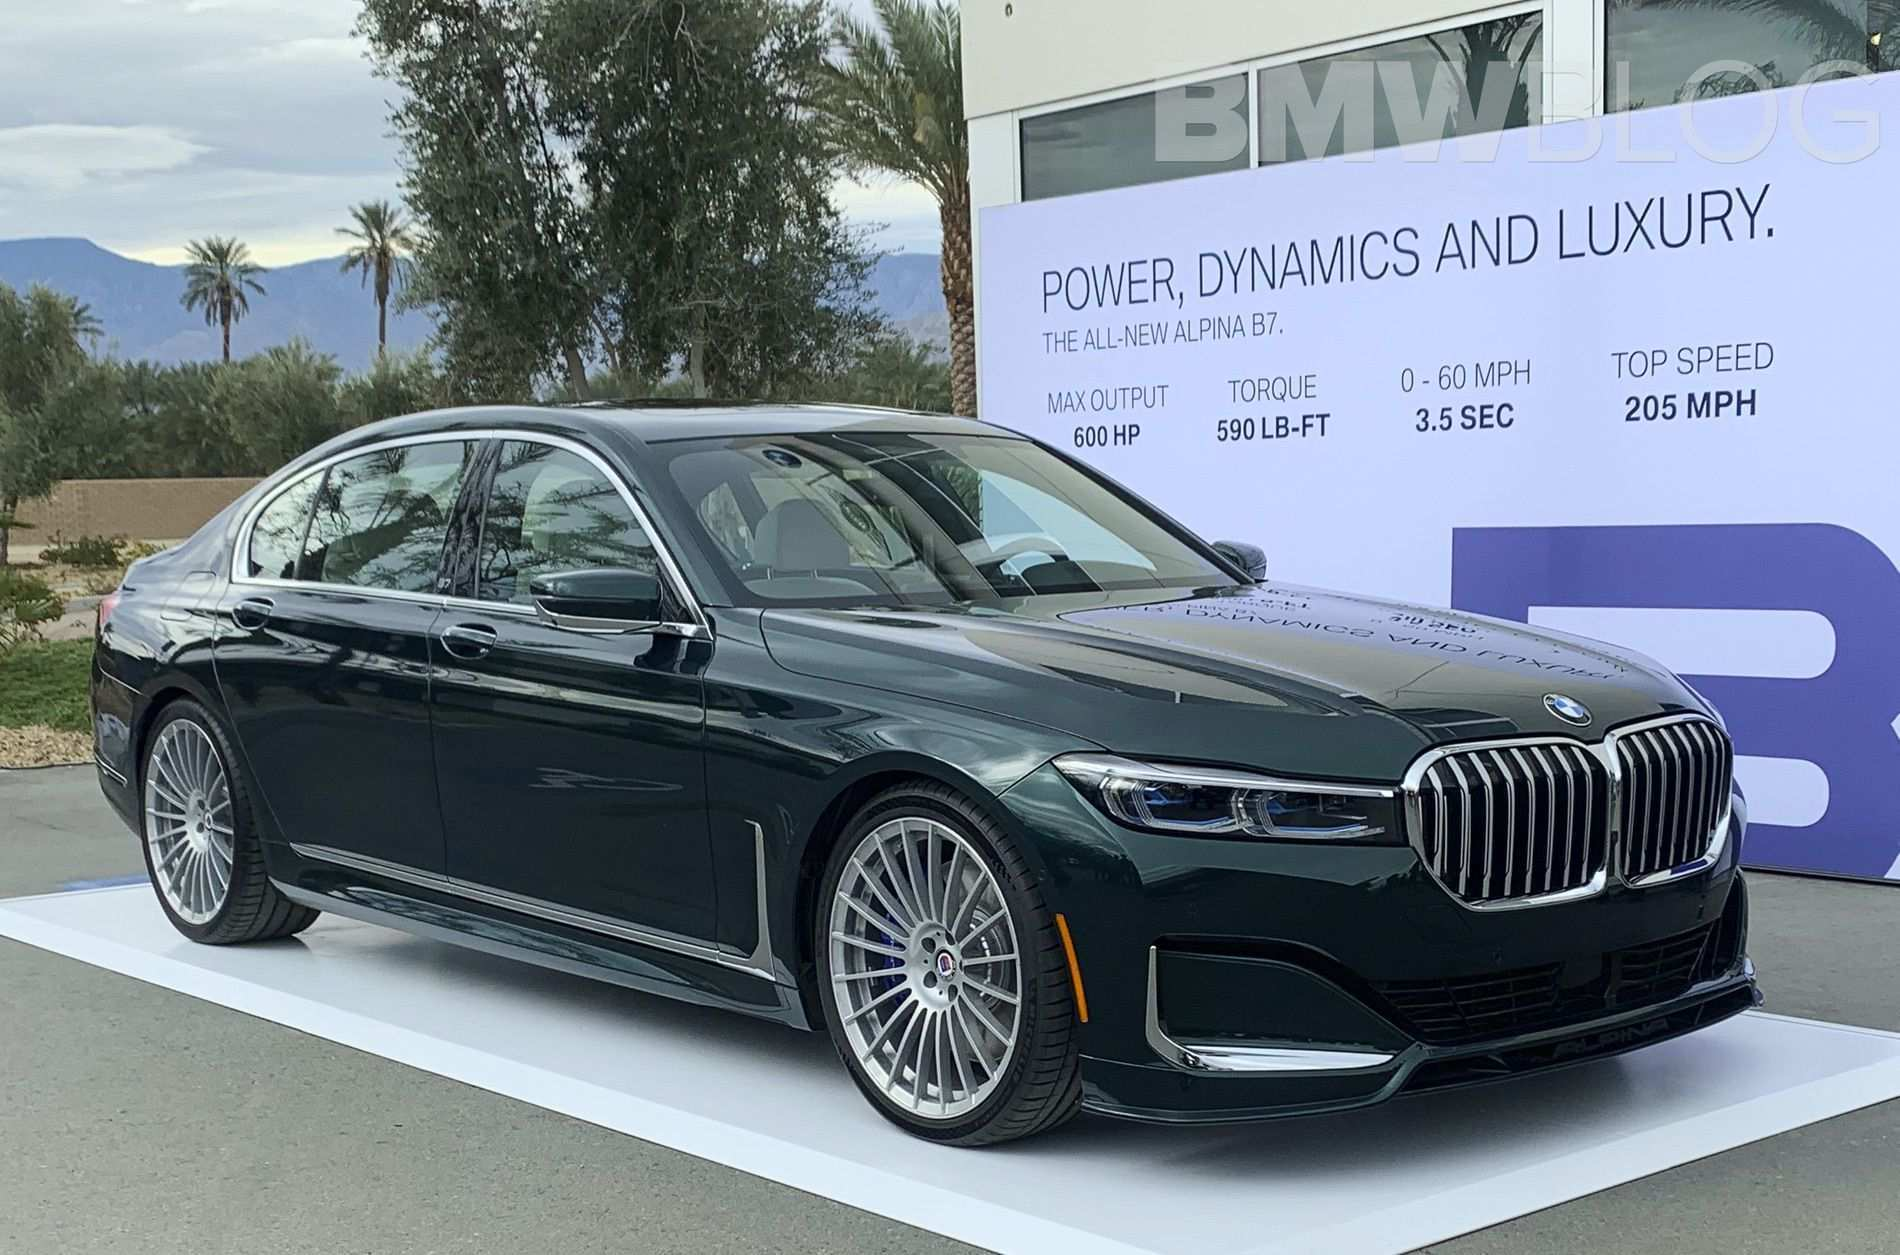 69 The Best BMW B7 Alpina 2020 New Model And Performance